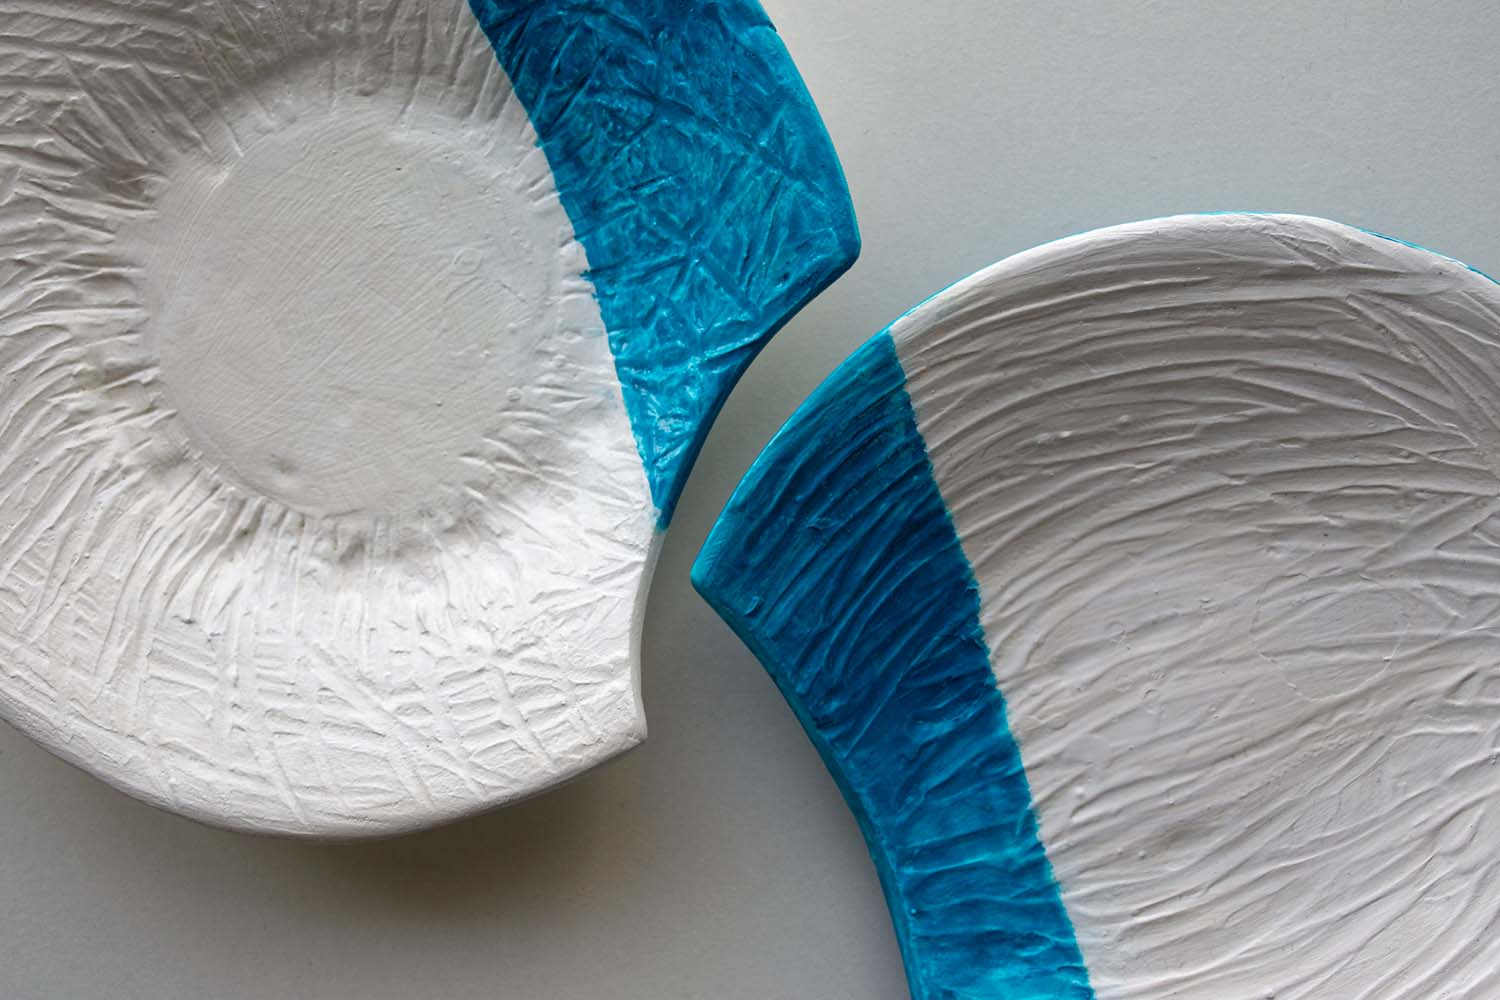 White-Teal Double Ceramic Plate